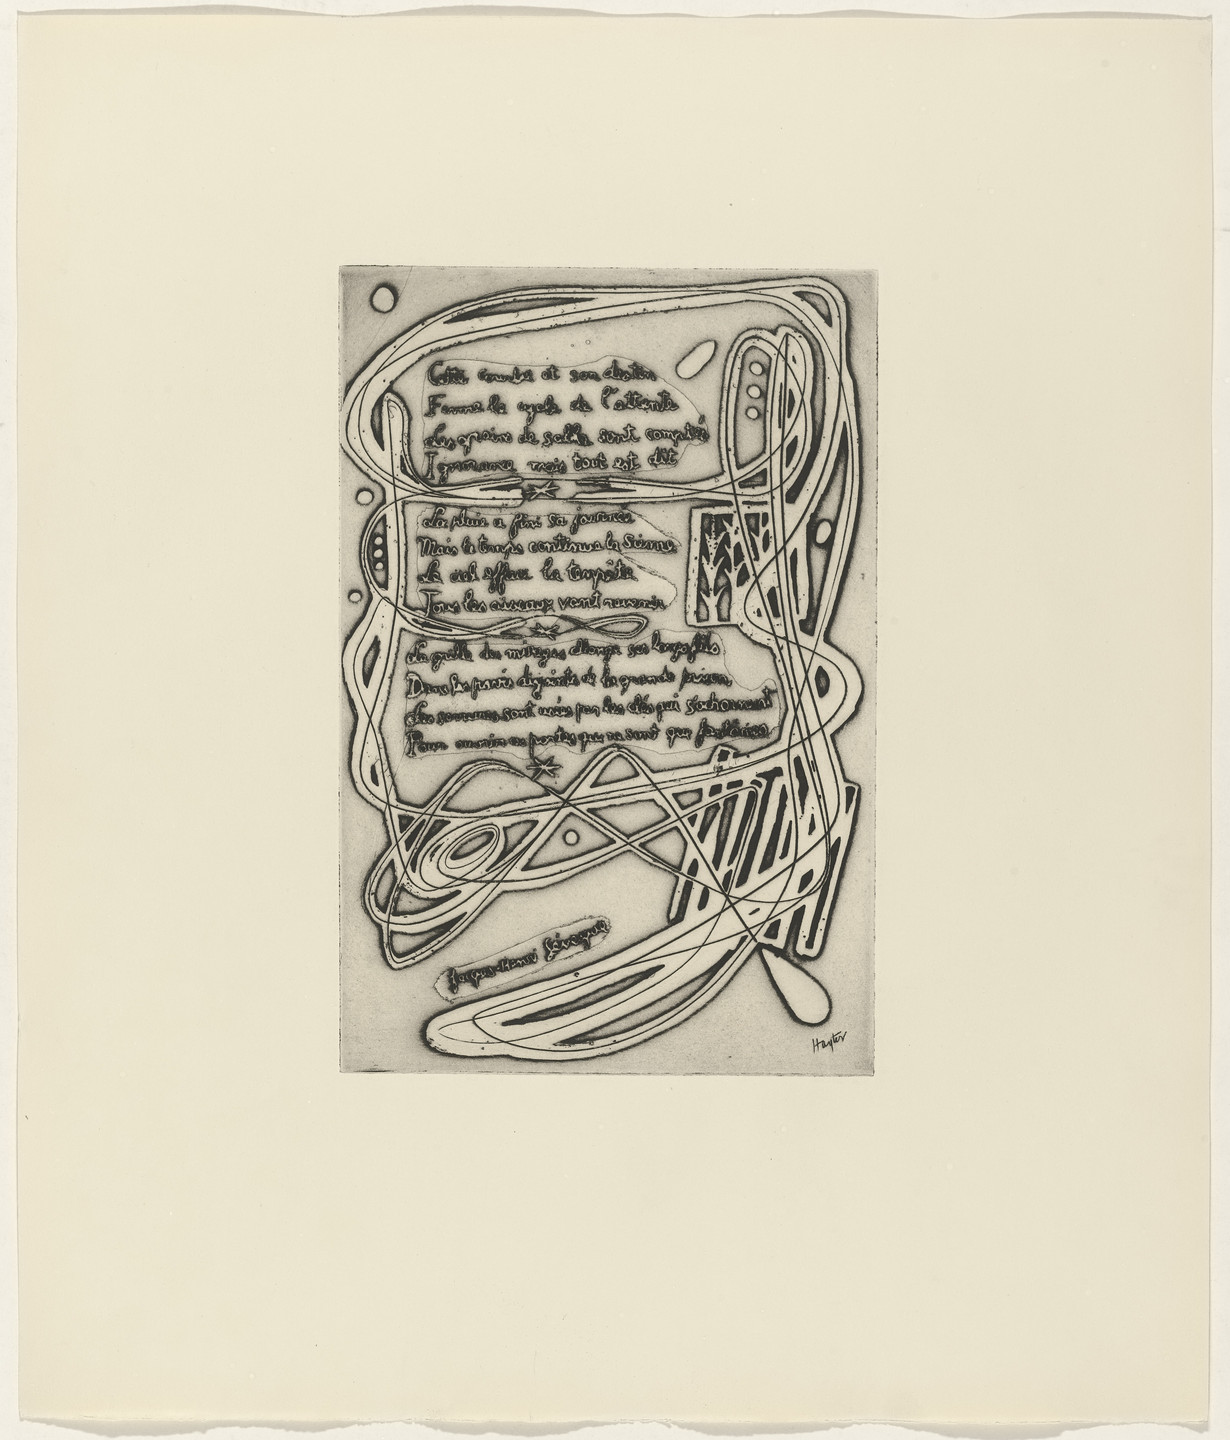 Stanley William Hayter, Jacques-Henri Lévesque. In-text plate (folio 11) from 21 Etchings and Poems. c. 1950s, published 1960